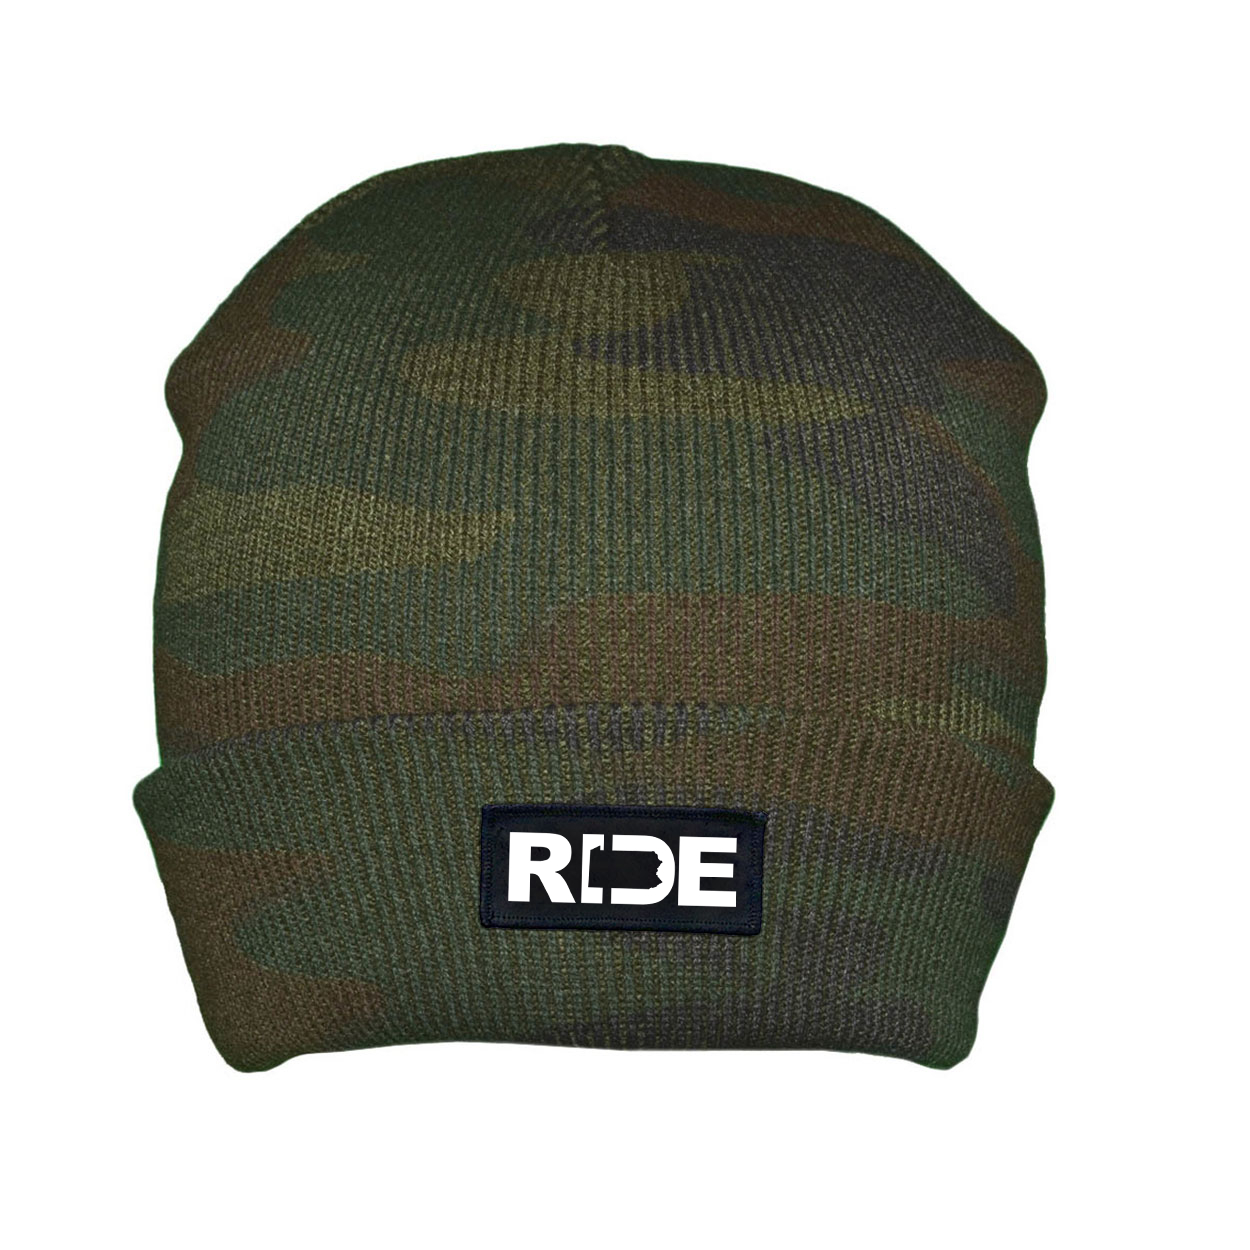 Ride Pennsylvania Night Out Woven Patch Roll Up Skully Beanie Camo (White Logo)